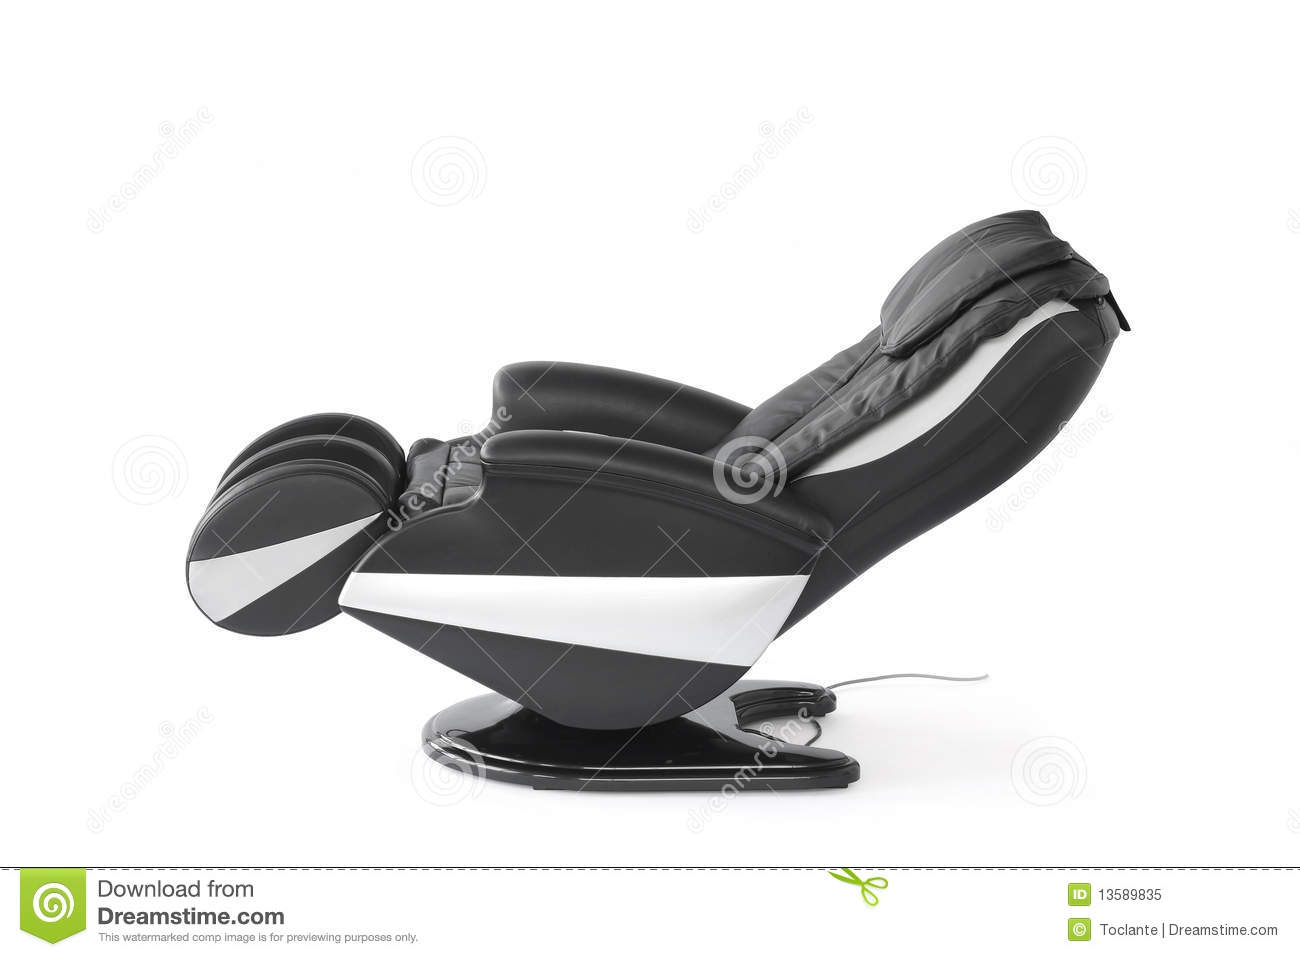 Reclined massage chair royalty free stock photo image for Chair network golf